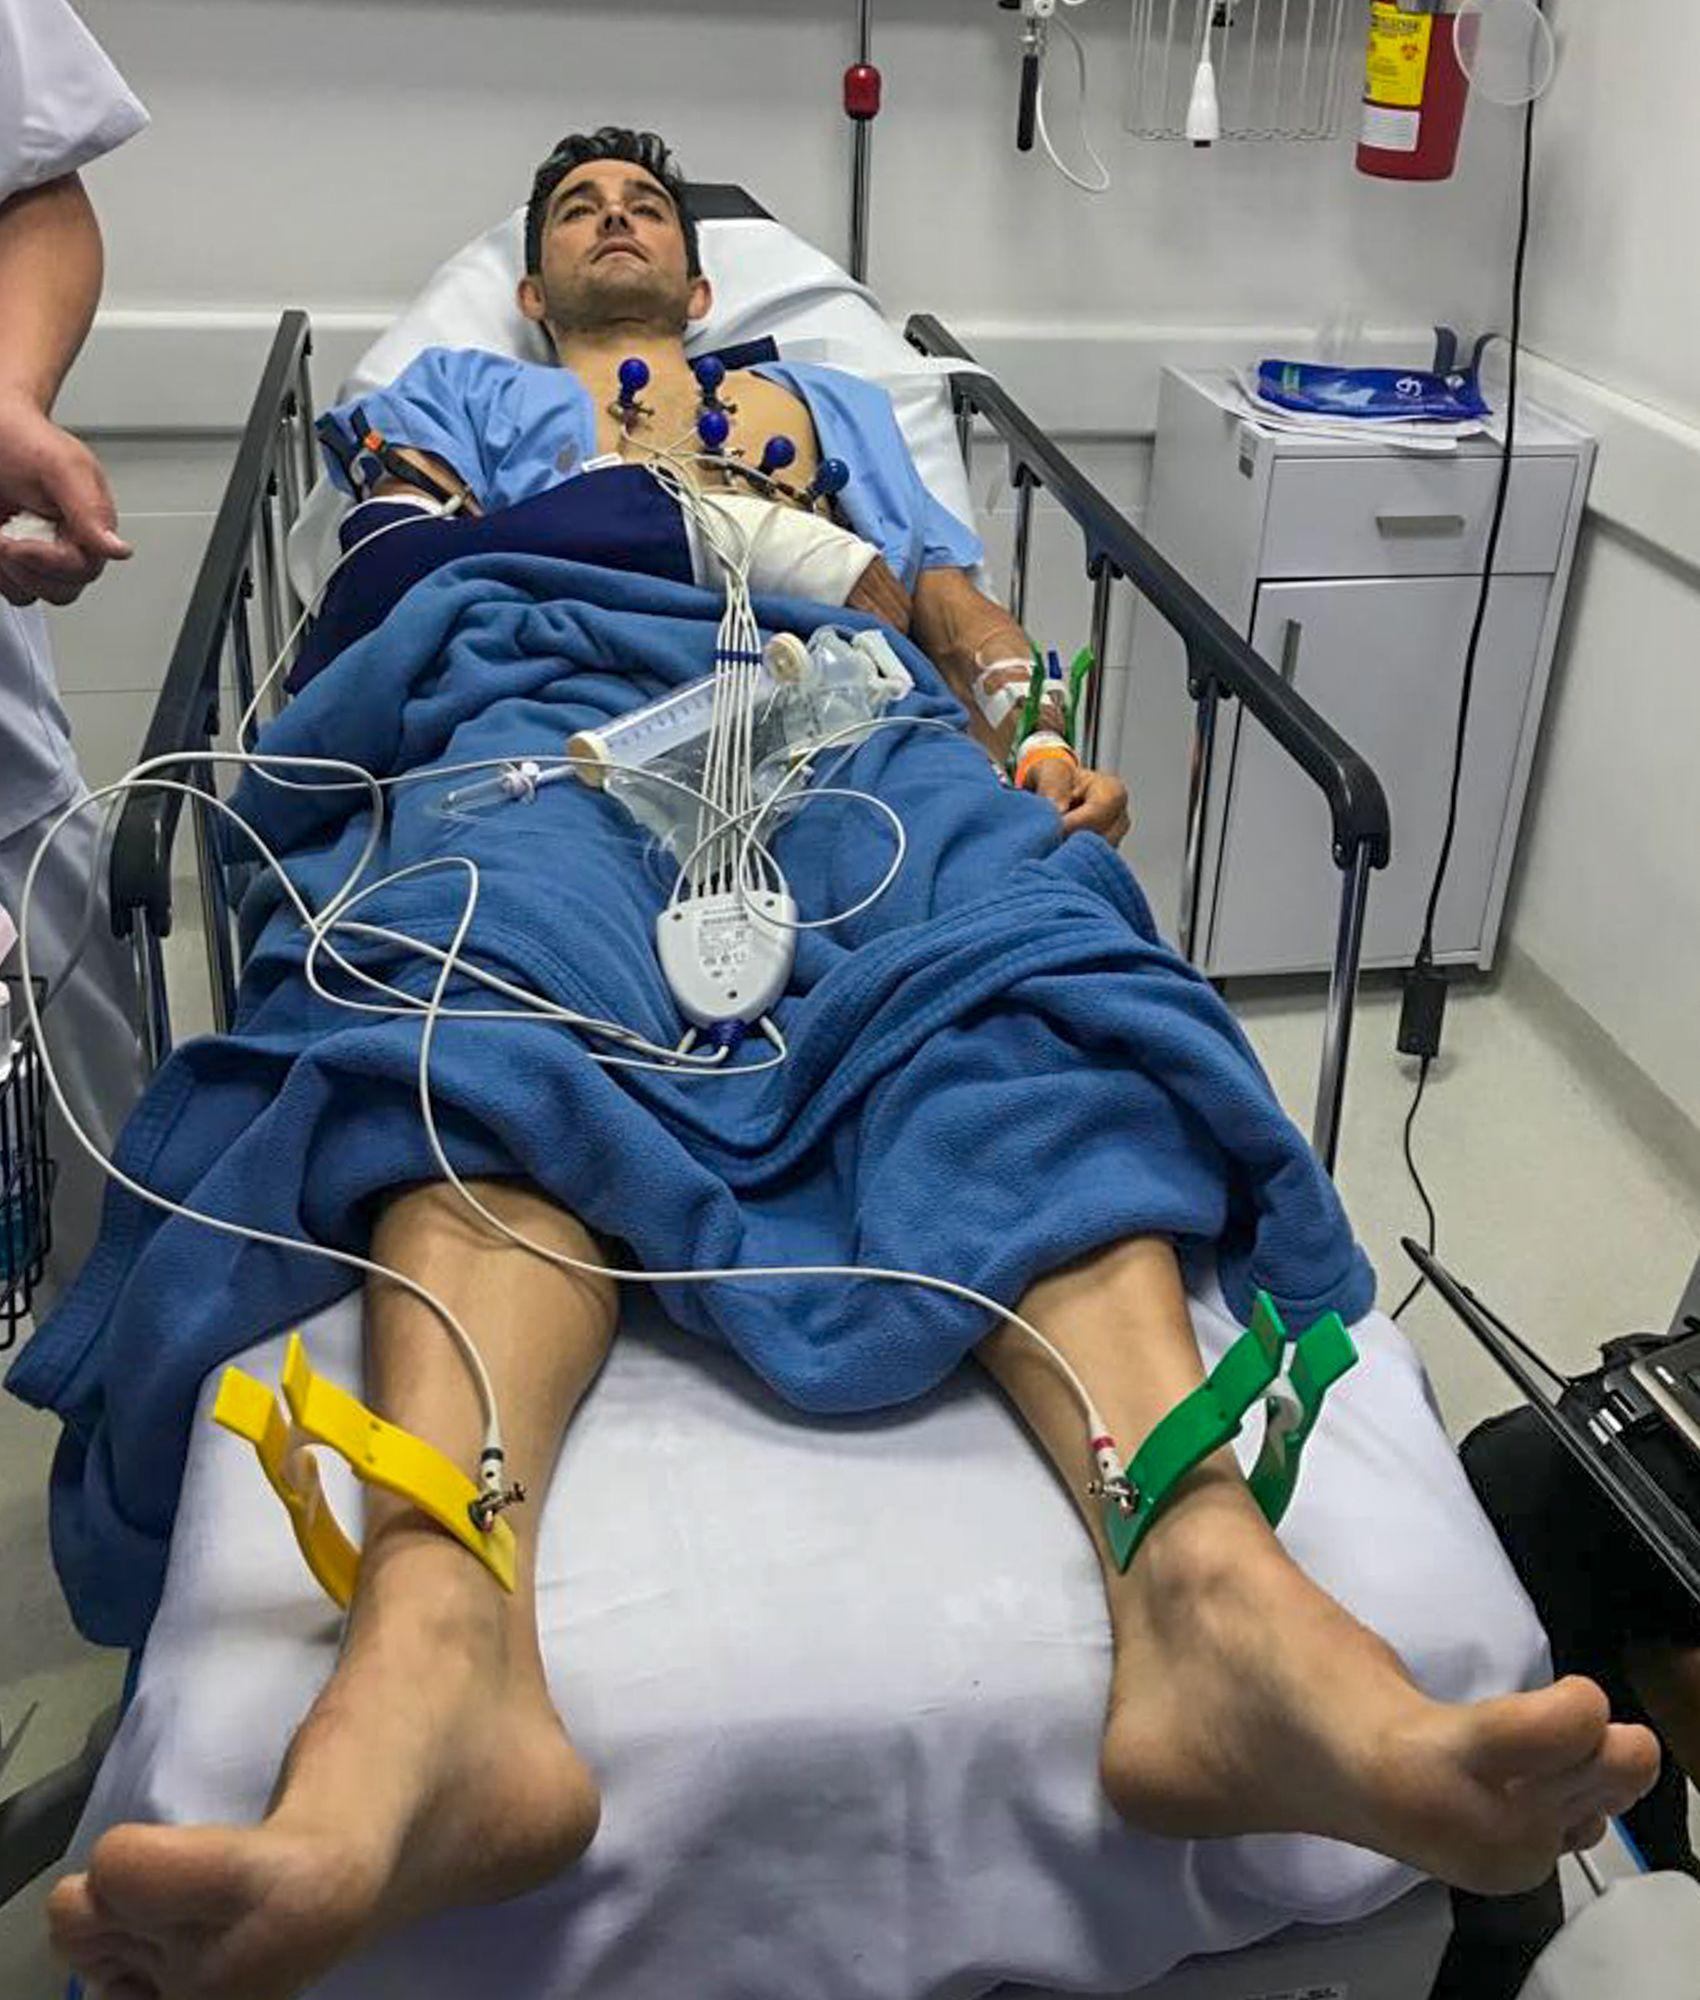 Oscar Sevilla is in hospital after being attacked by muggers in Colombia who stole his £10,000 bike